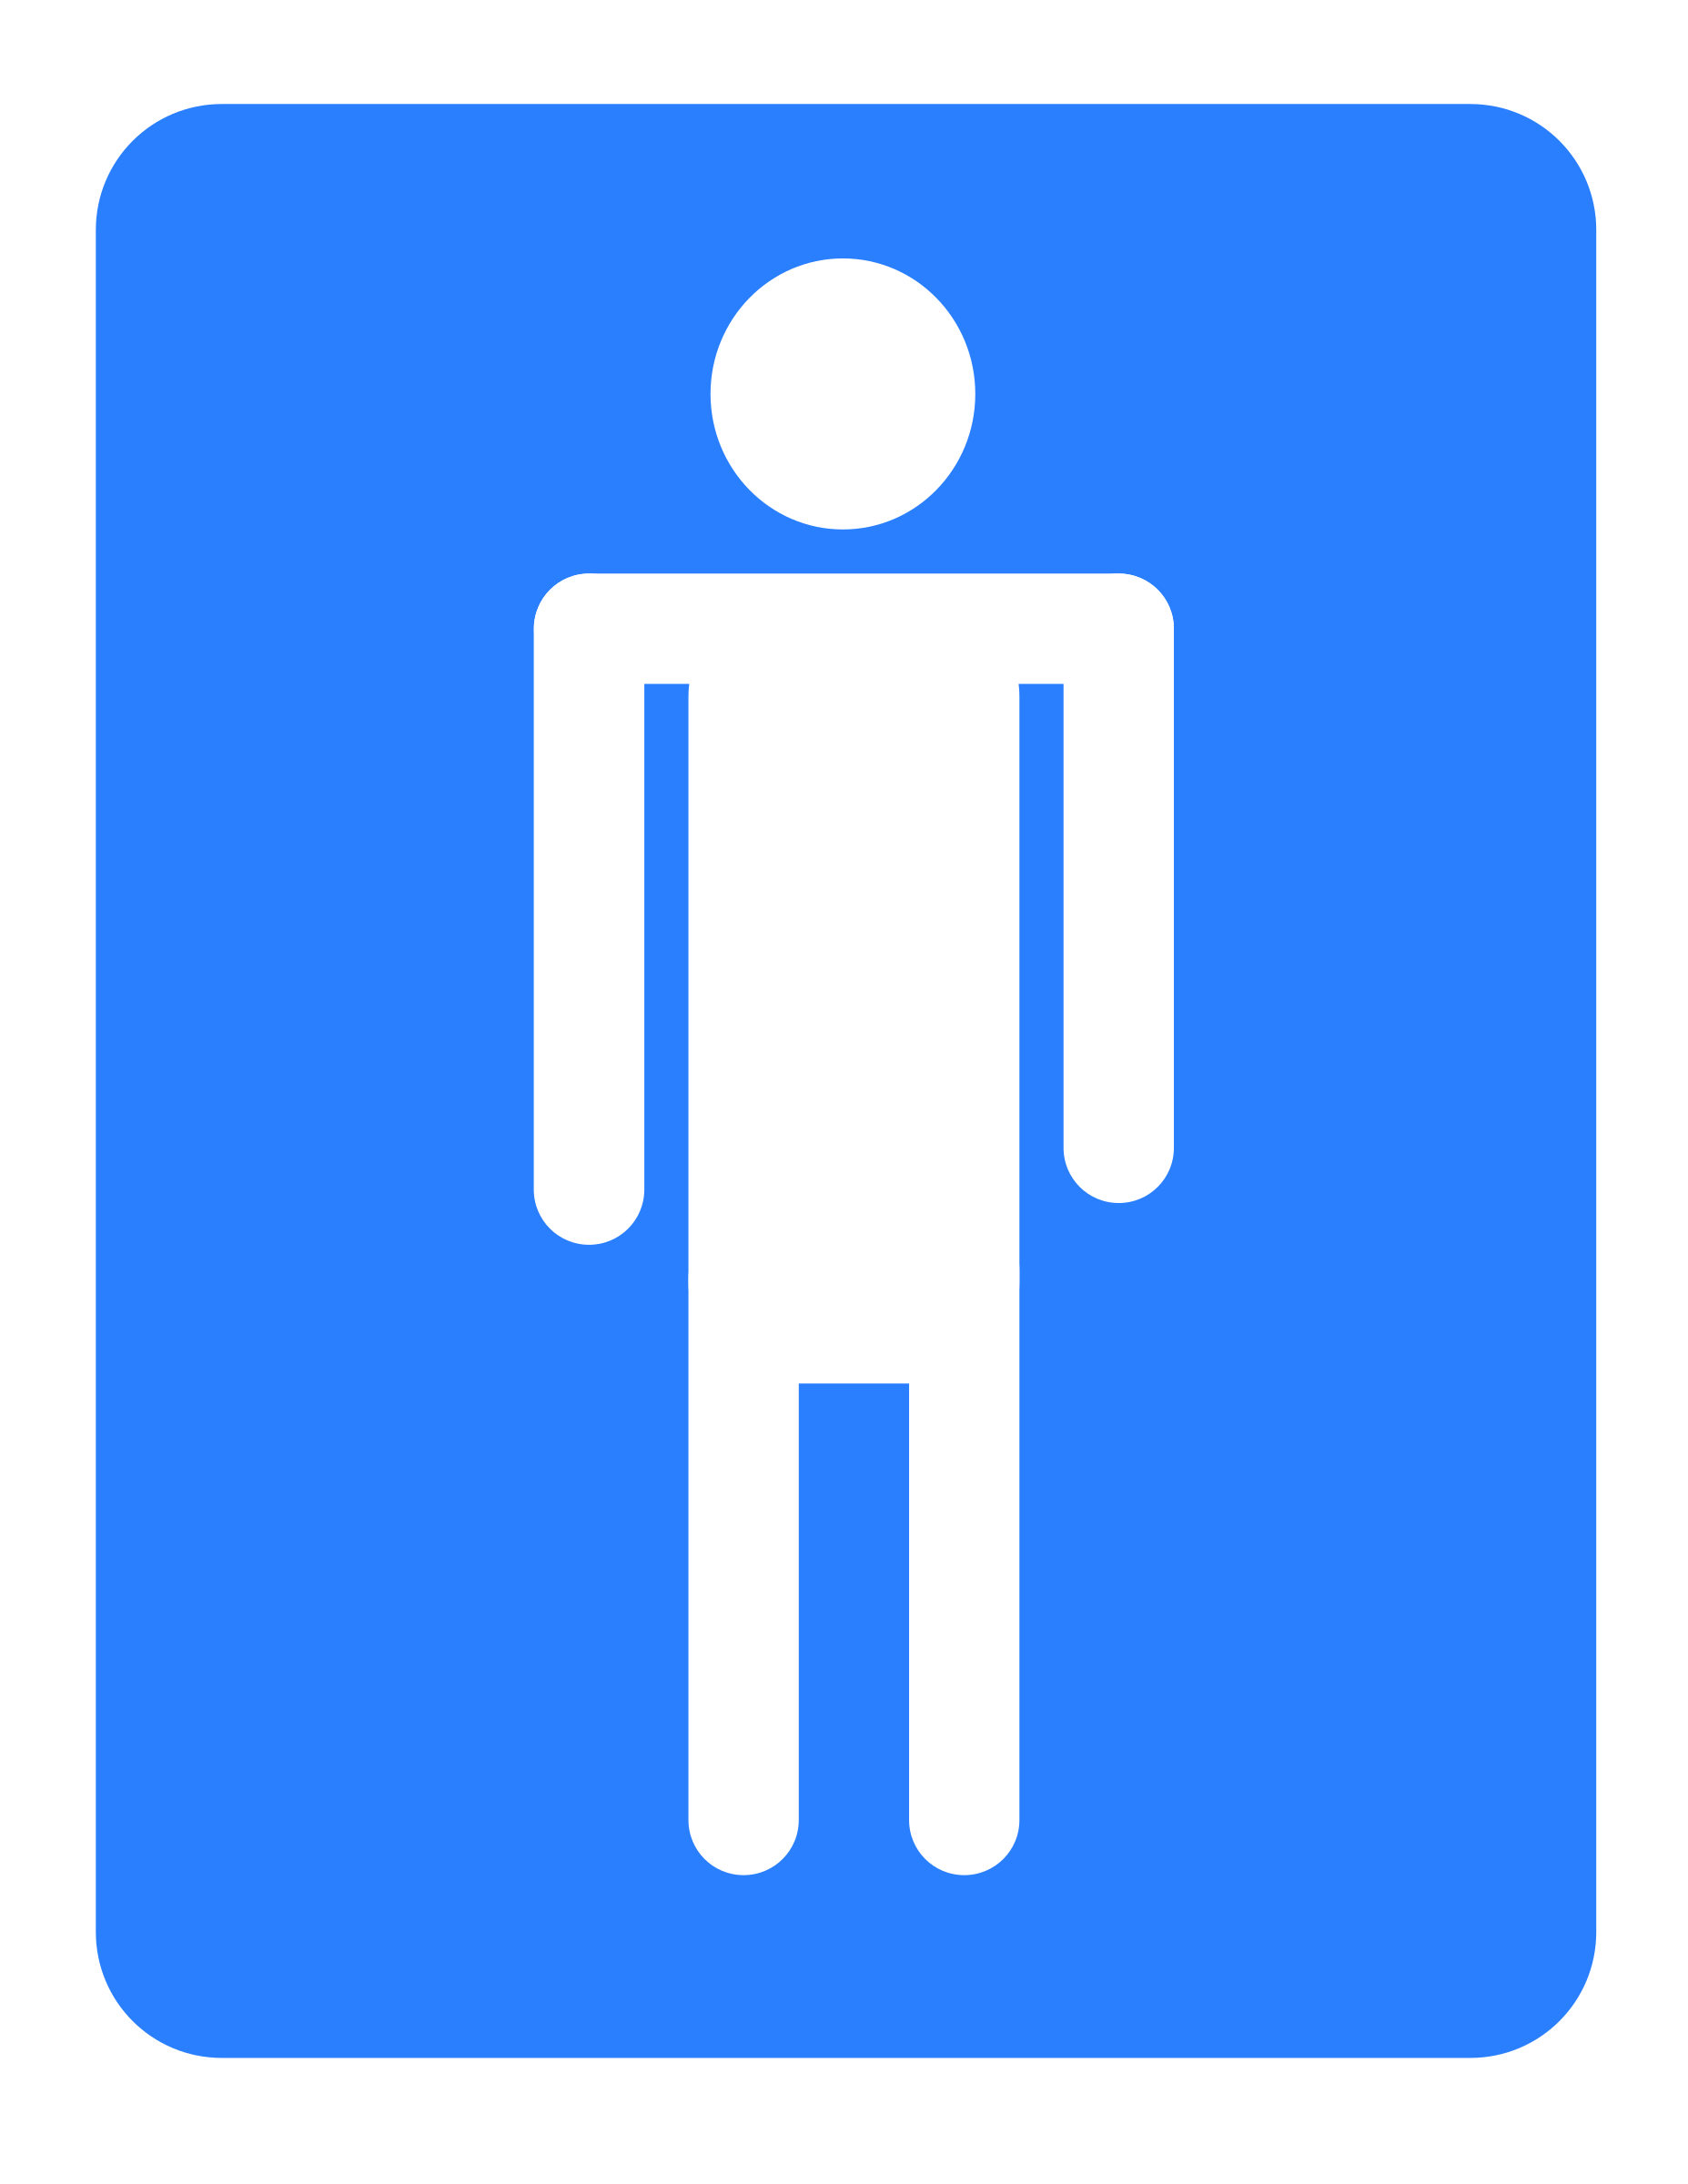 Men Restroom download restroom PNG images